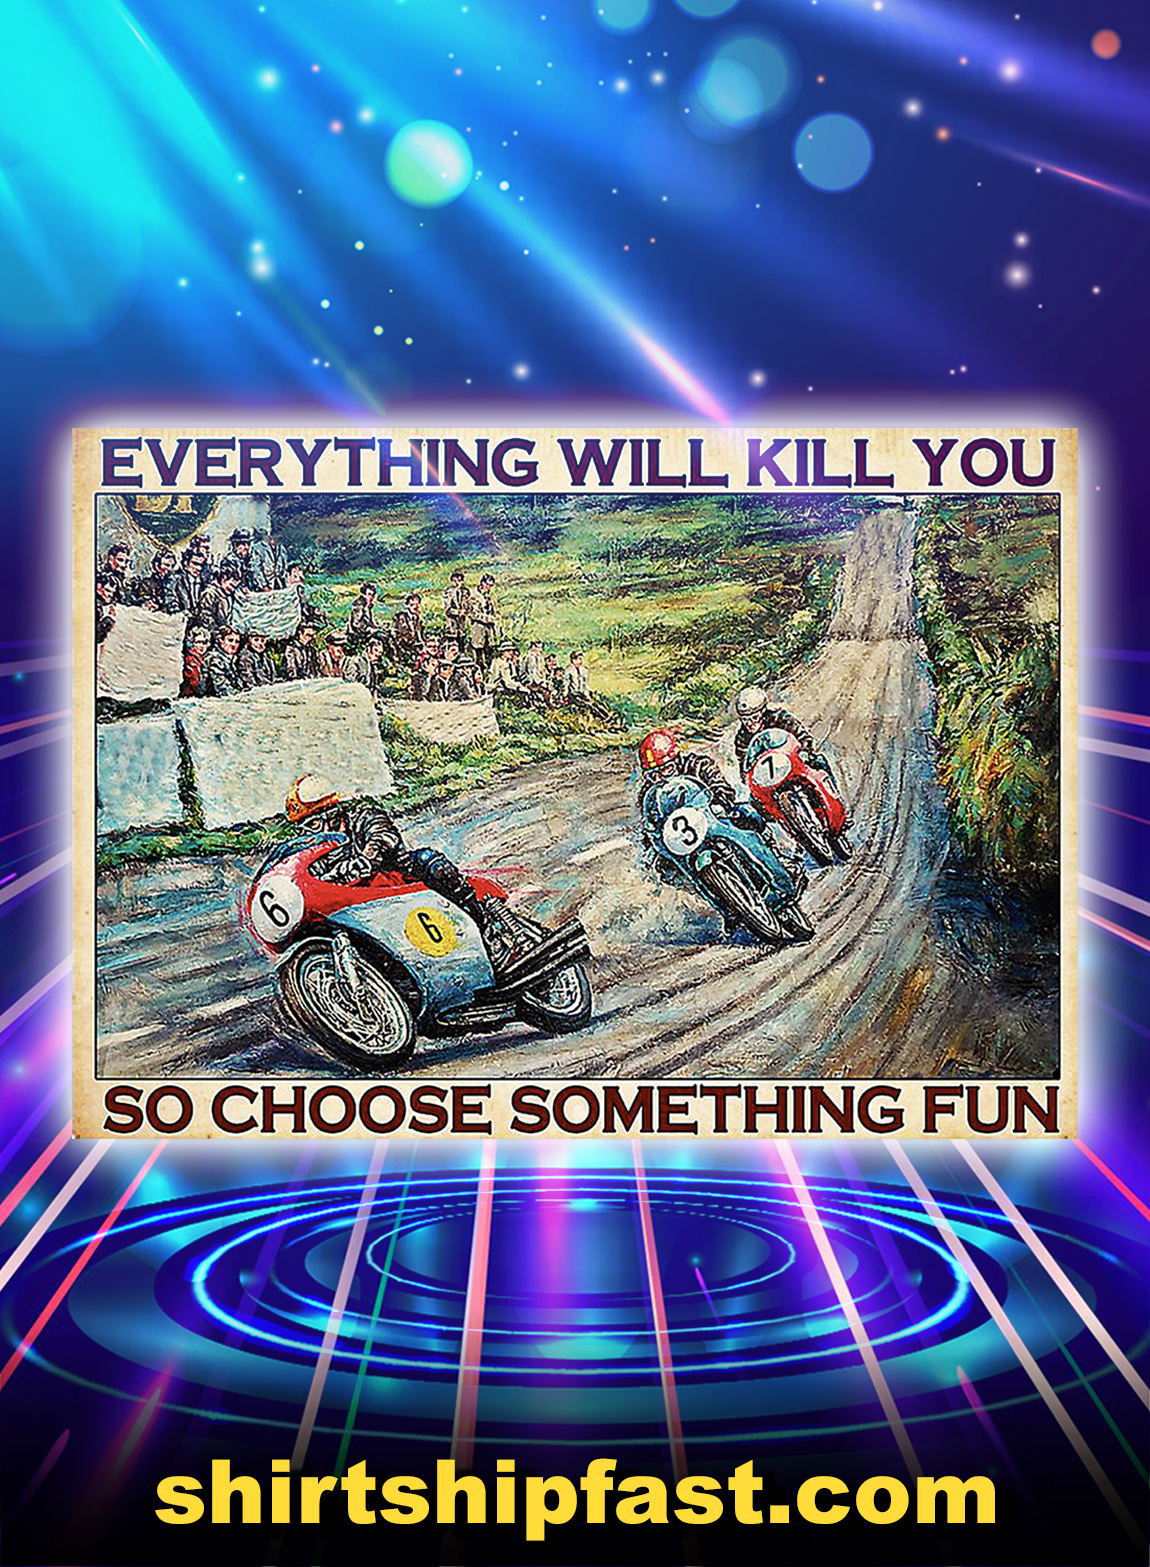 Isle of man everything will kill you so choose something fun poster - A2